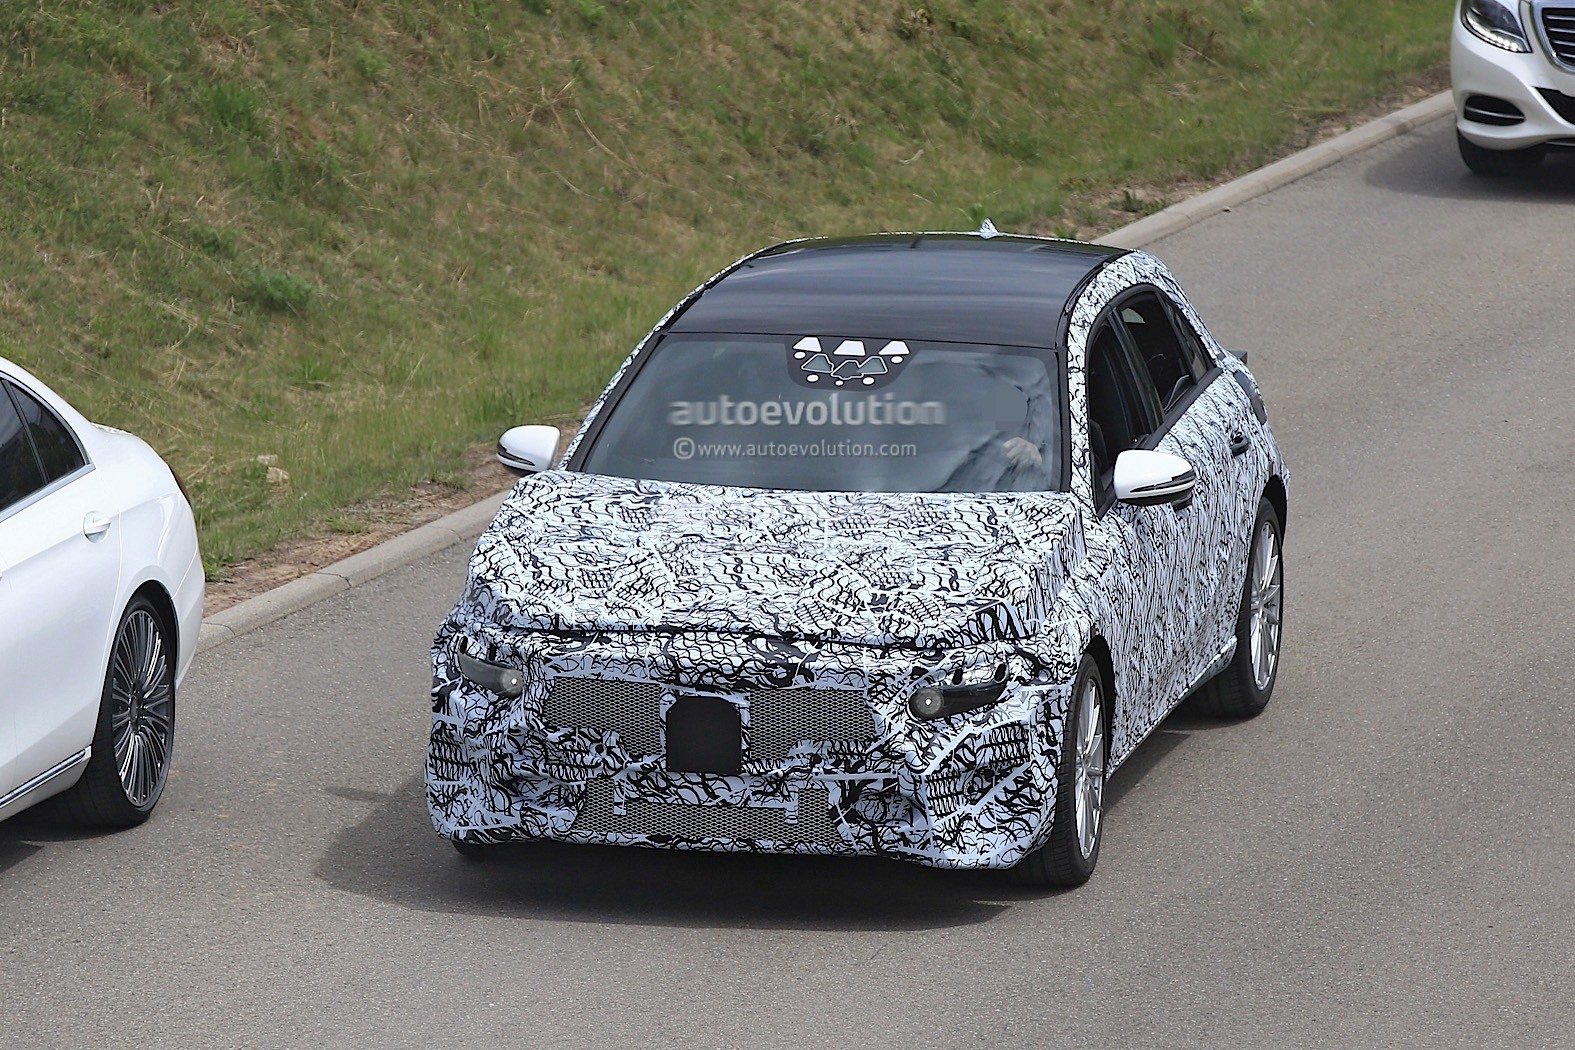 2018 mercedes benz a class prototype shows up for testing autoevolution. Black Bedroom Furniture Sets. Home Design Ideas